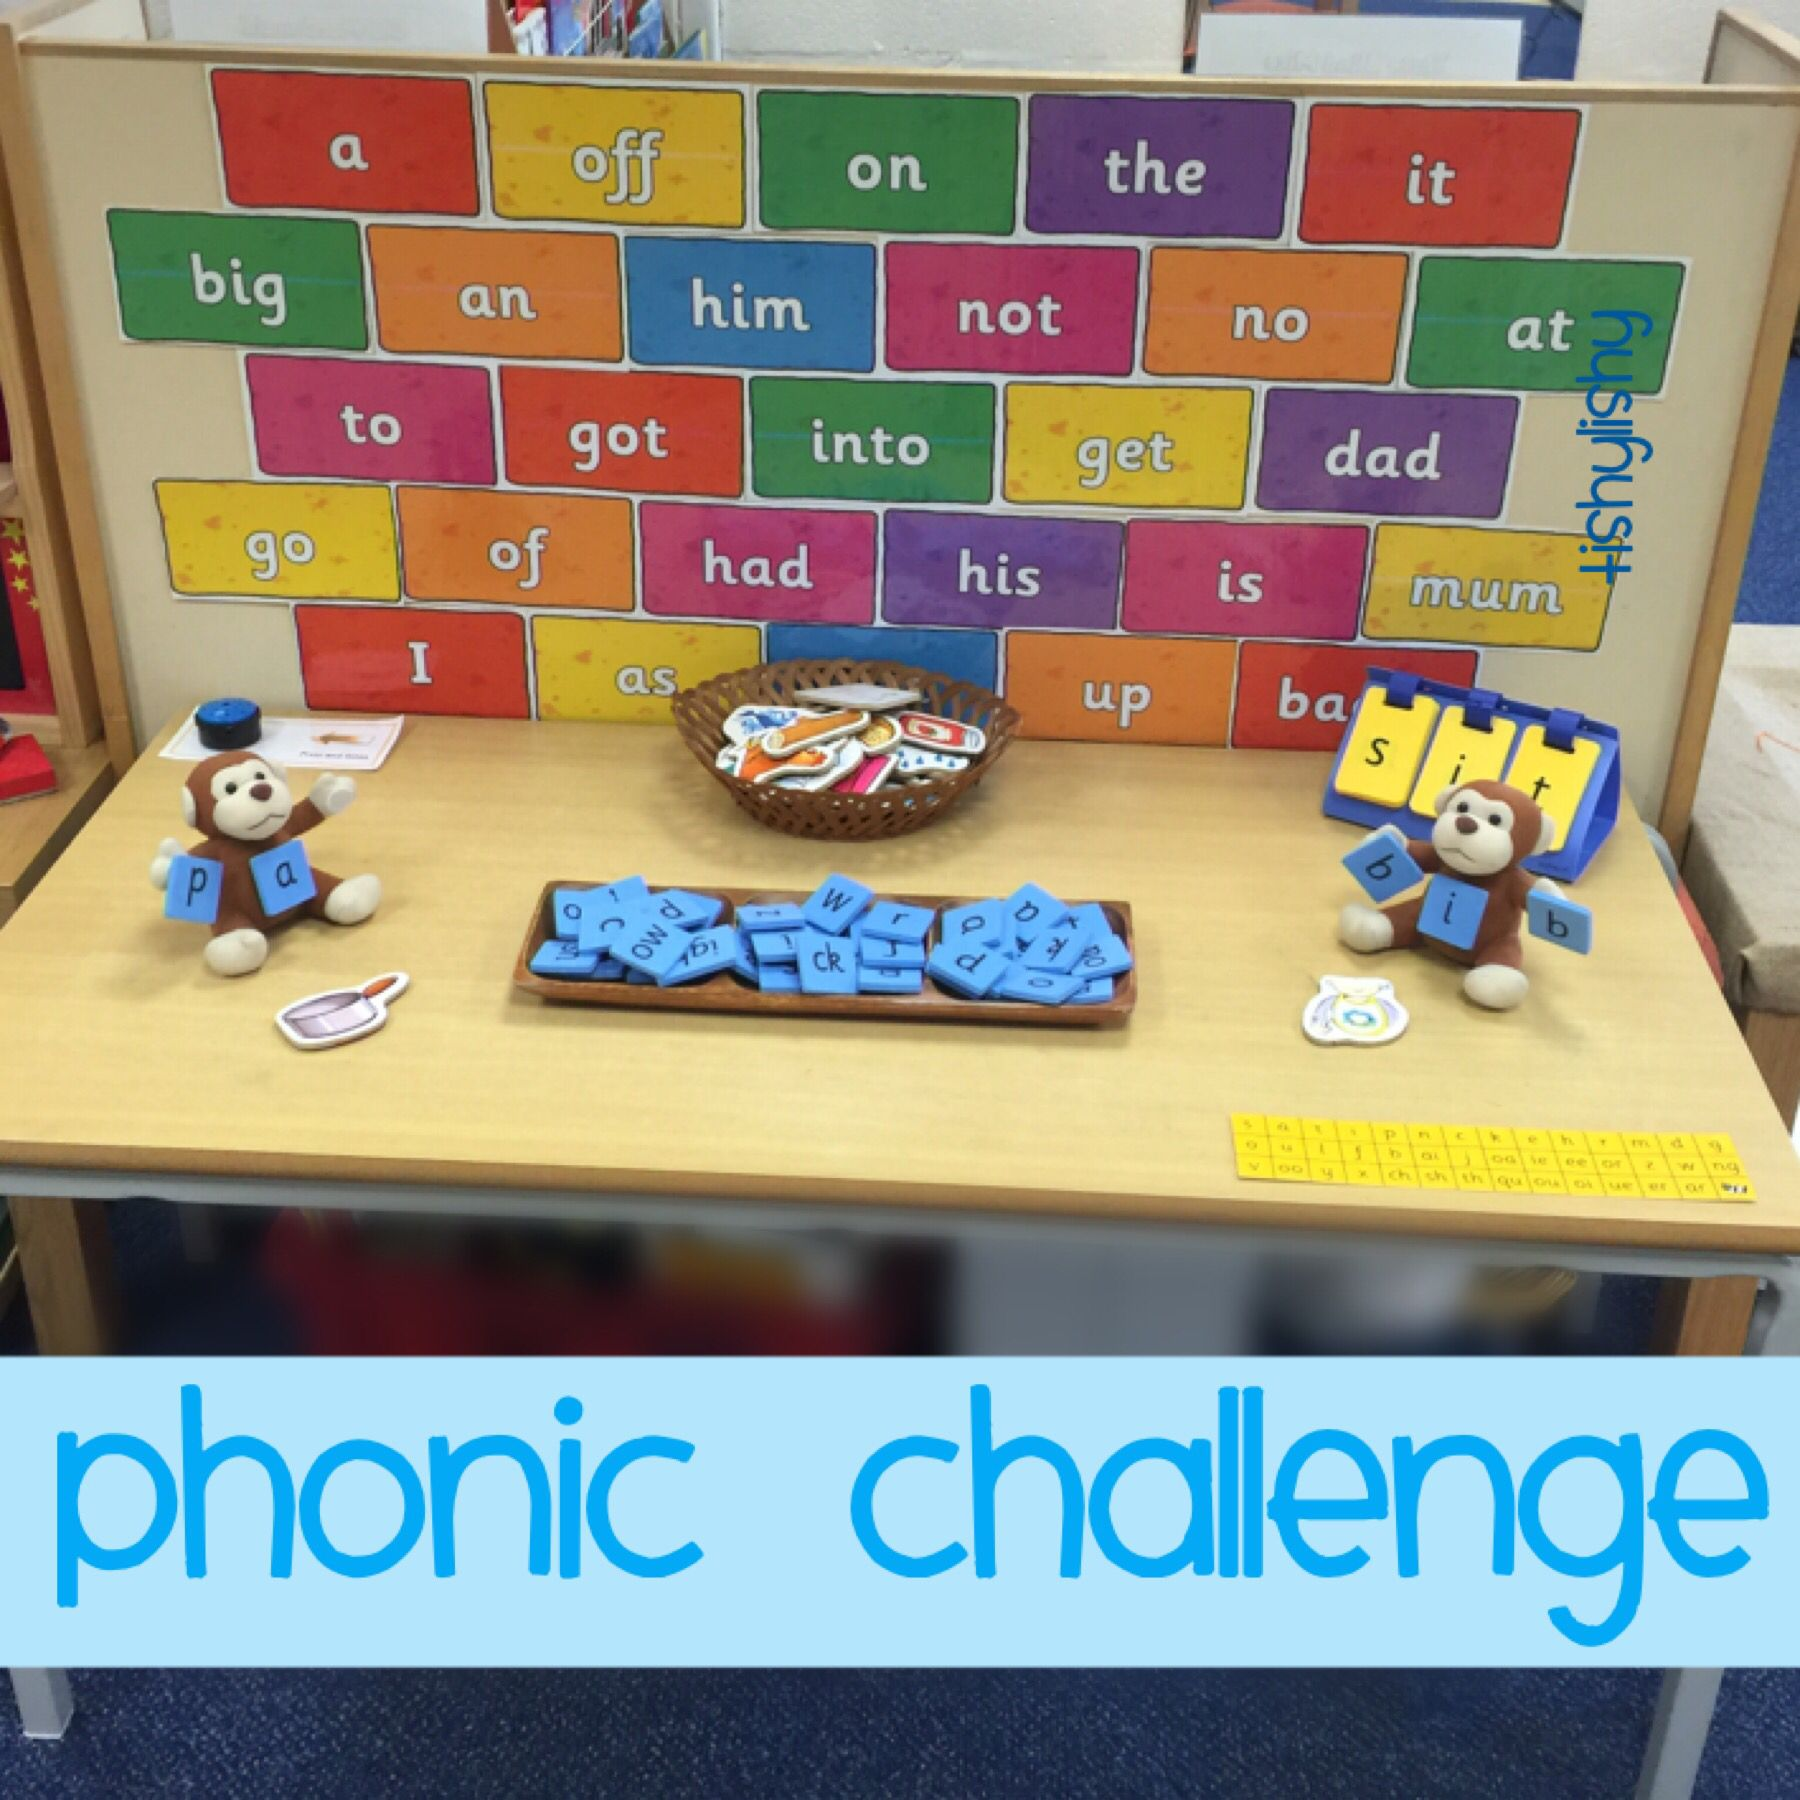 Clever chimp phonic challenge - word wall from Twinkl | Work ...